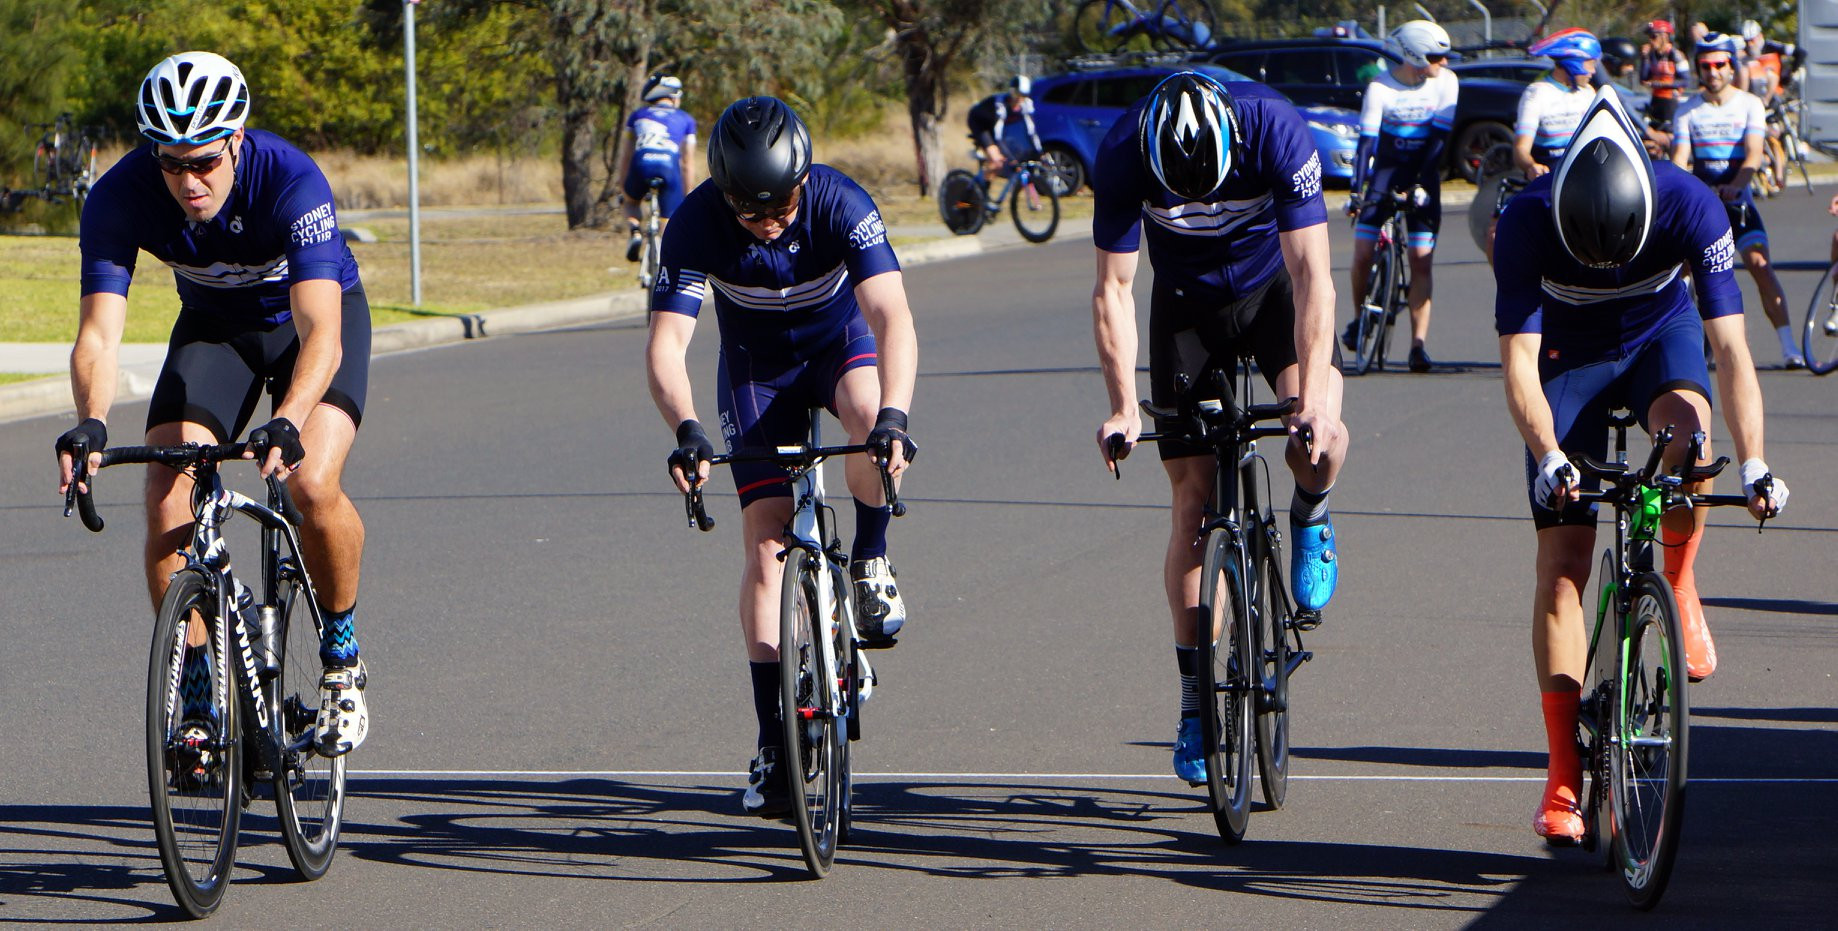 NSW Club Team Trial Championships